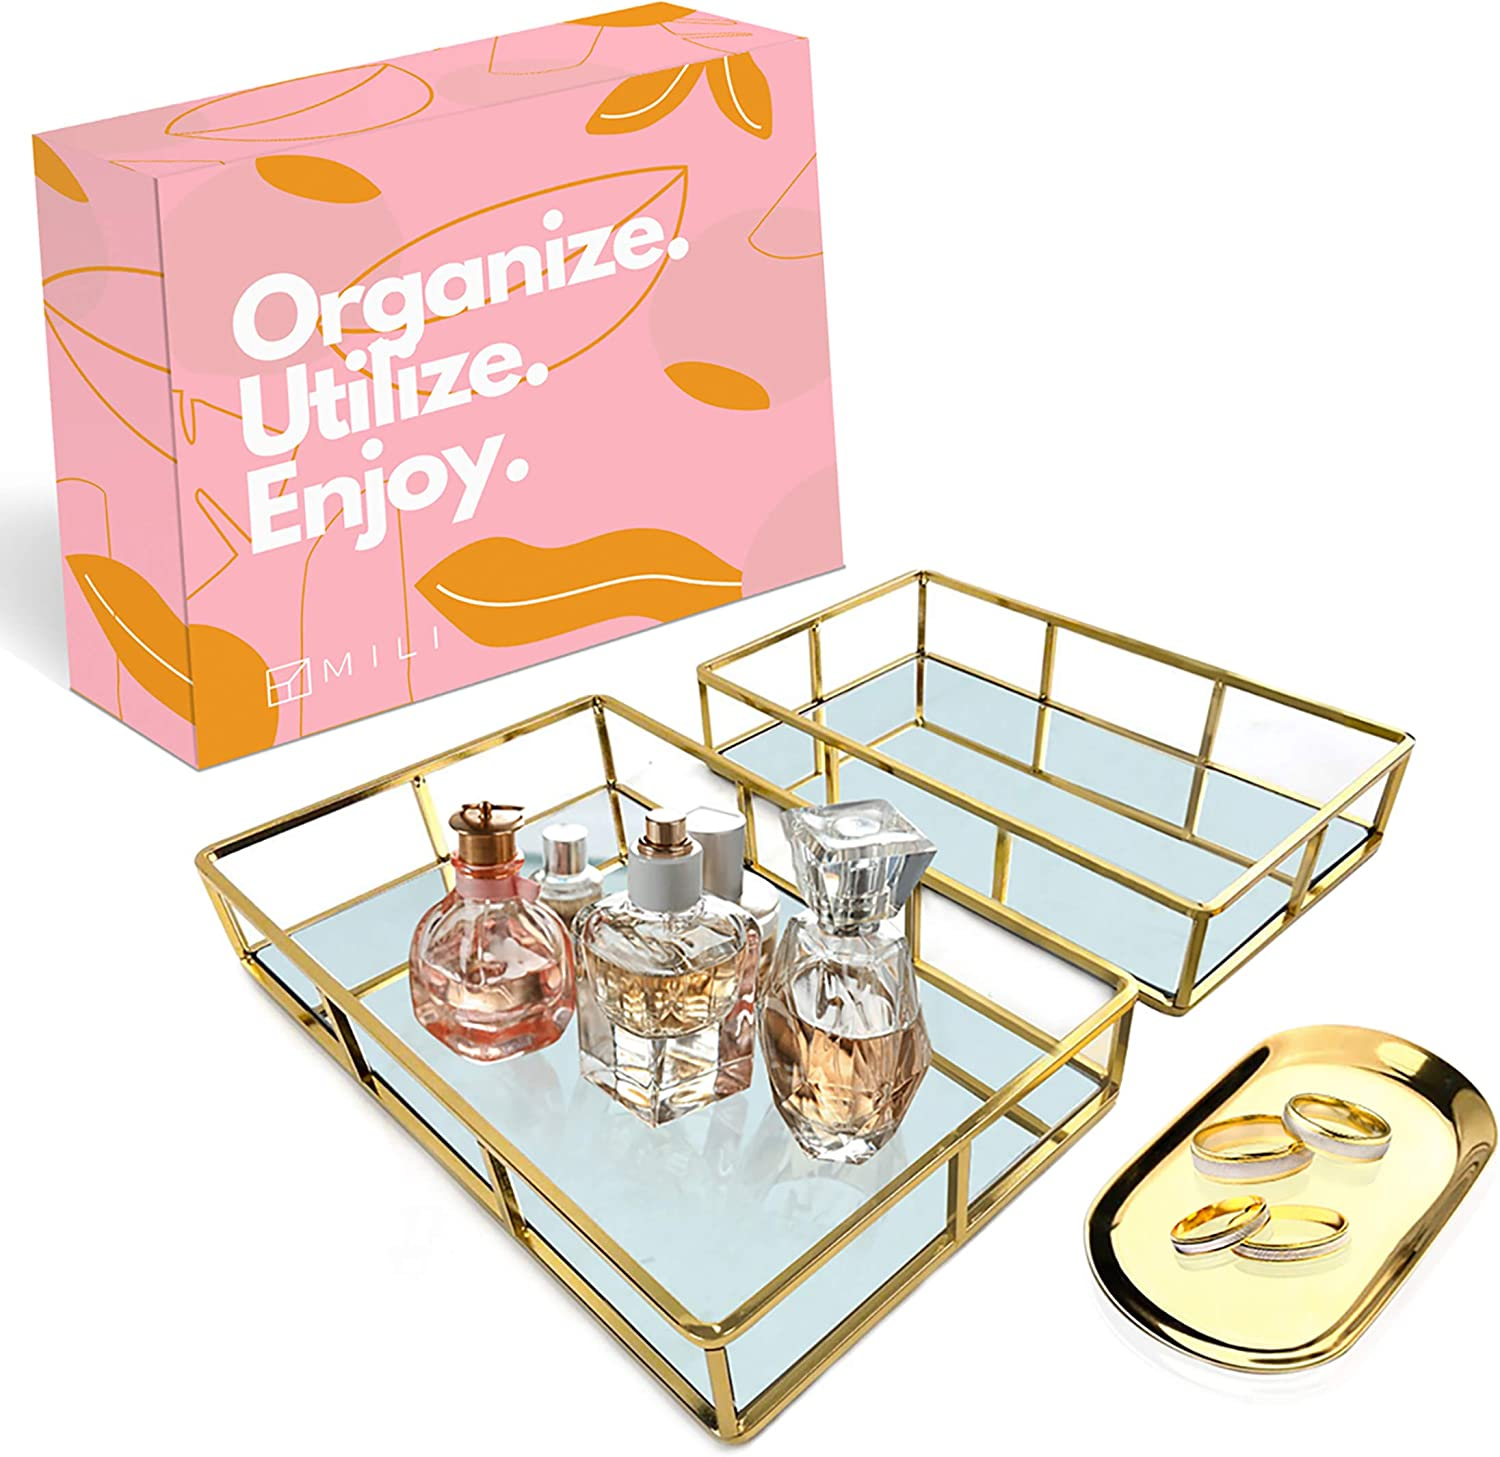 Mili Vanity Trays – Large & Small Mirror Tray, Perfume Organizer for Bedroom, Bathroom with Small Makeup Tray for Dresser – Gold Decorative Jewelry Tray – Gold Vanity Tray for Perfumes and Home Decor